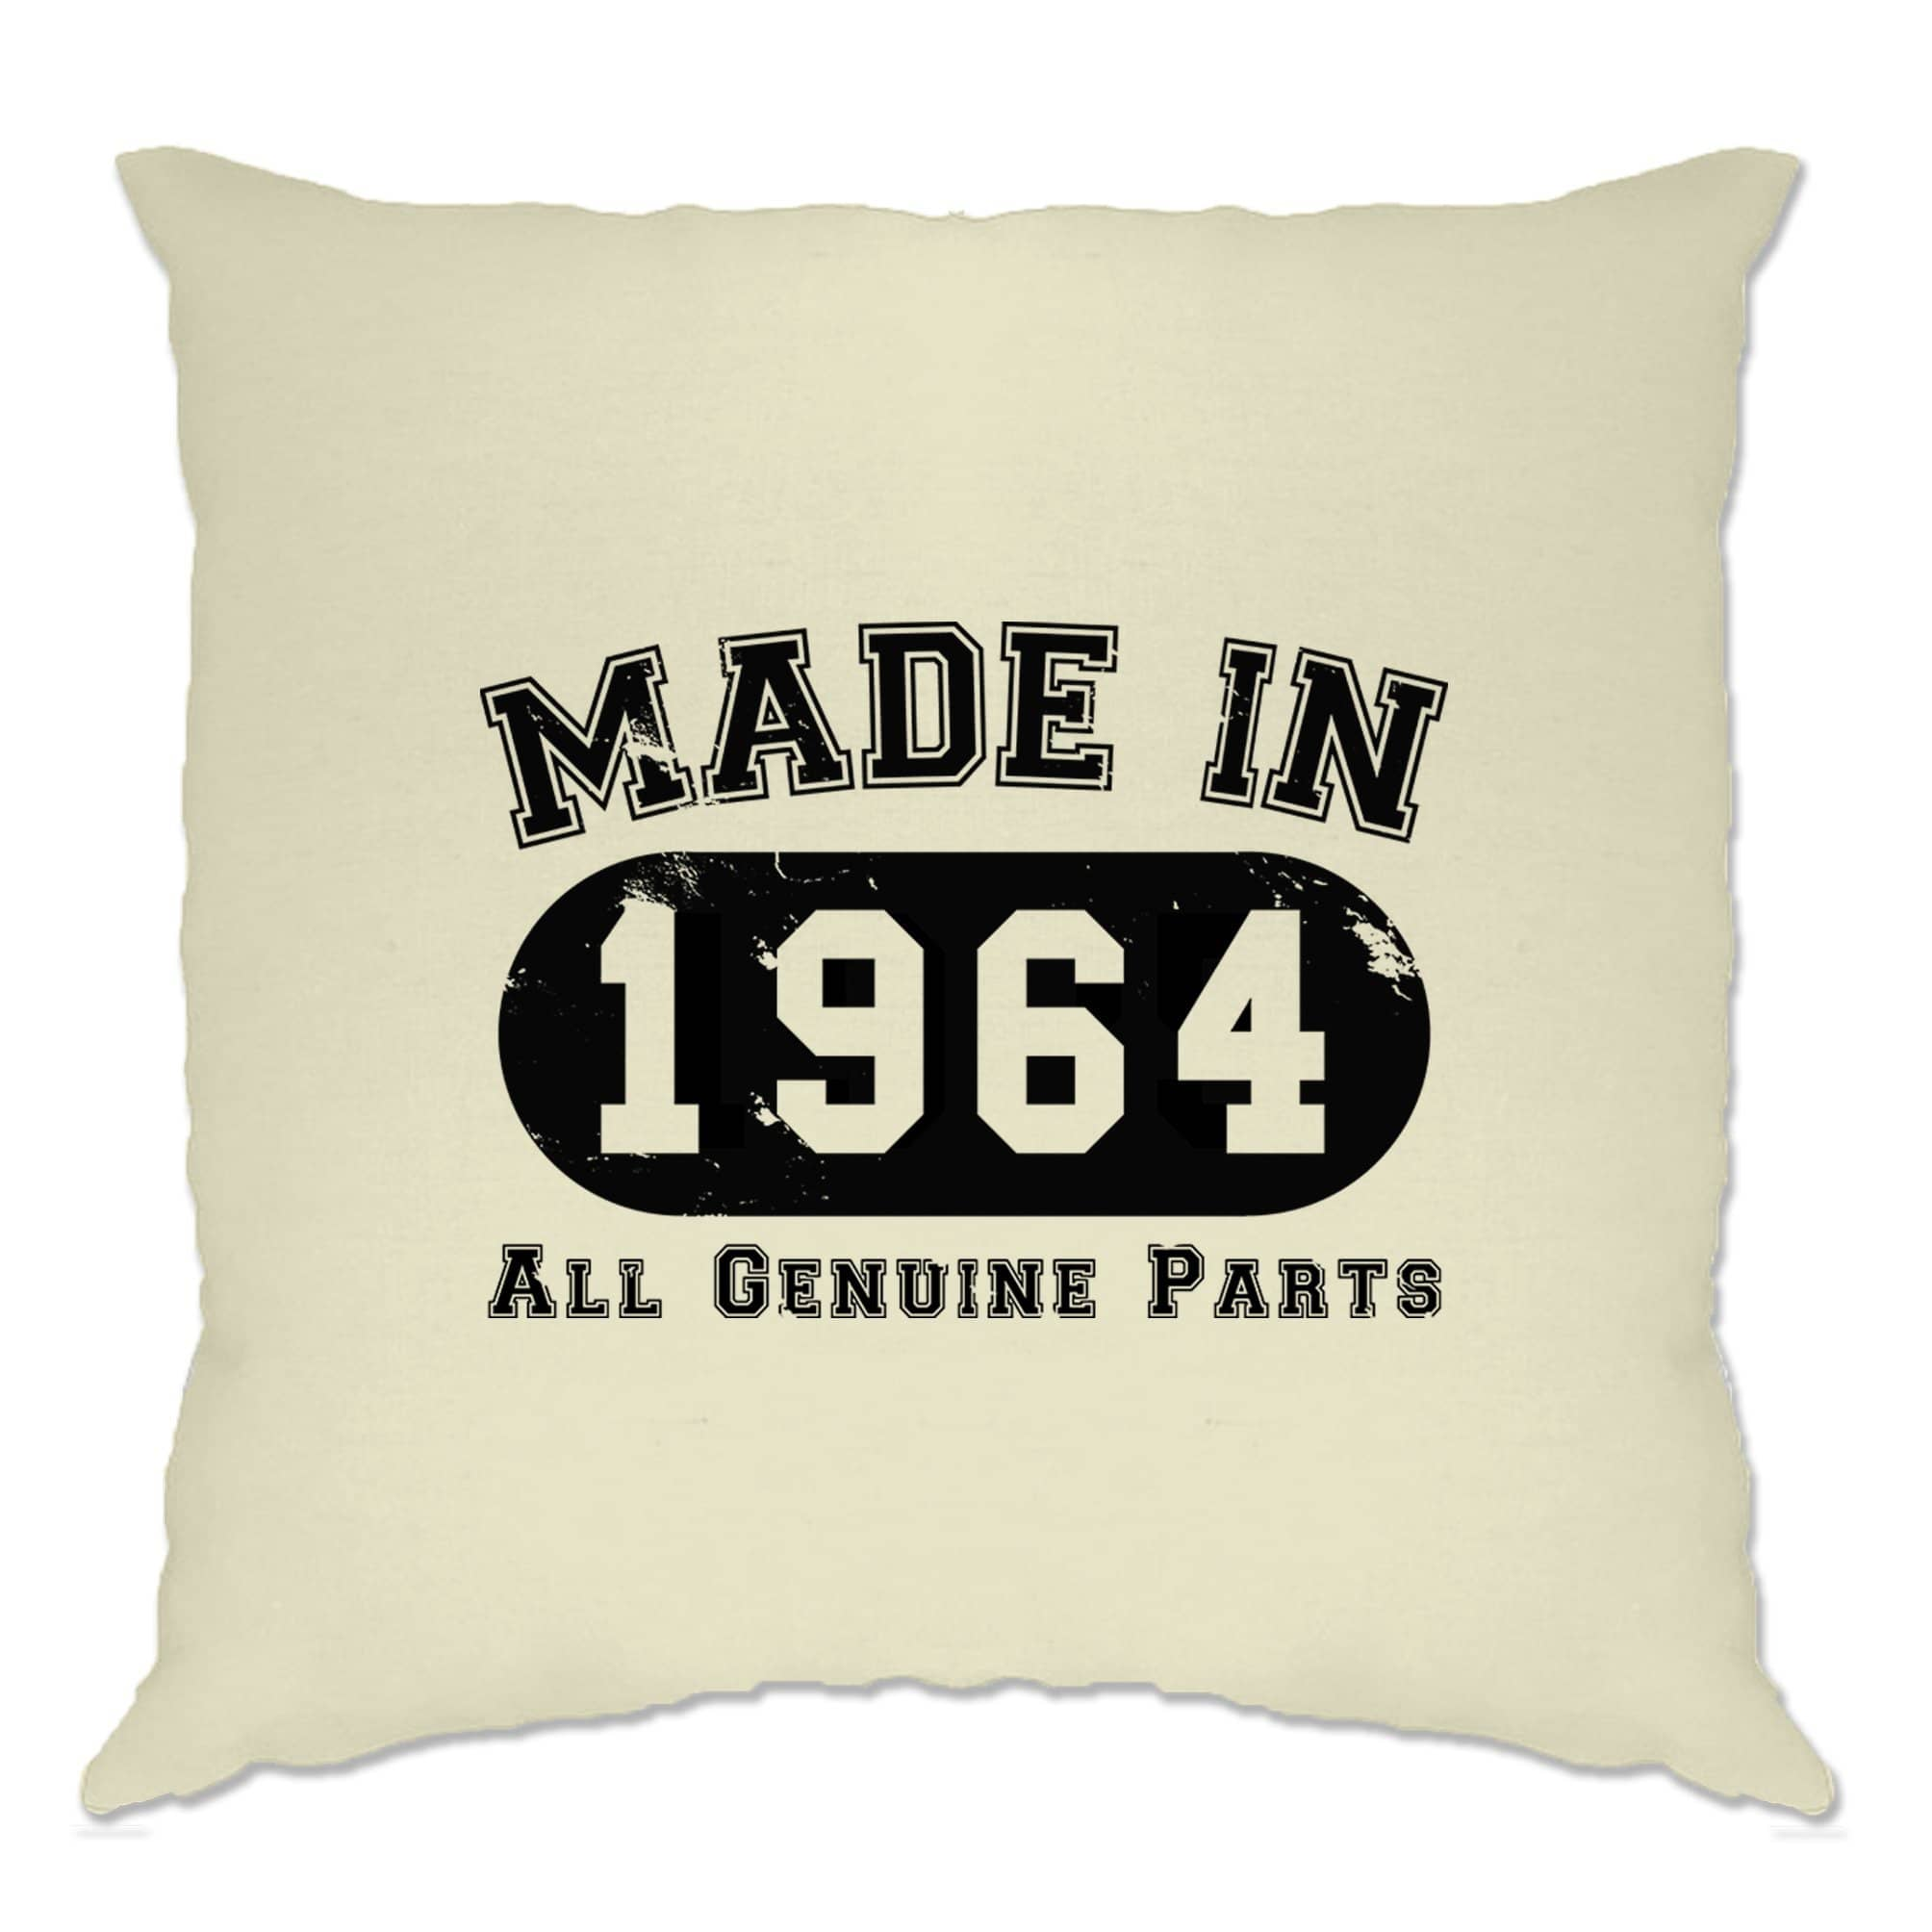 Birthday Cushion Cover Made in 1964 All Genuine Parts